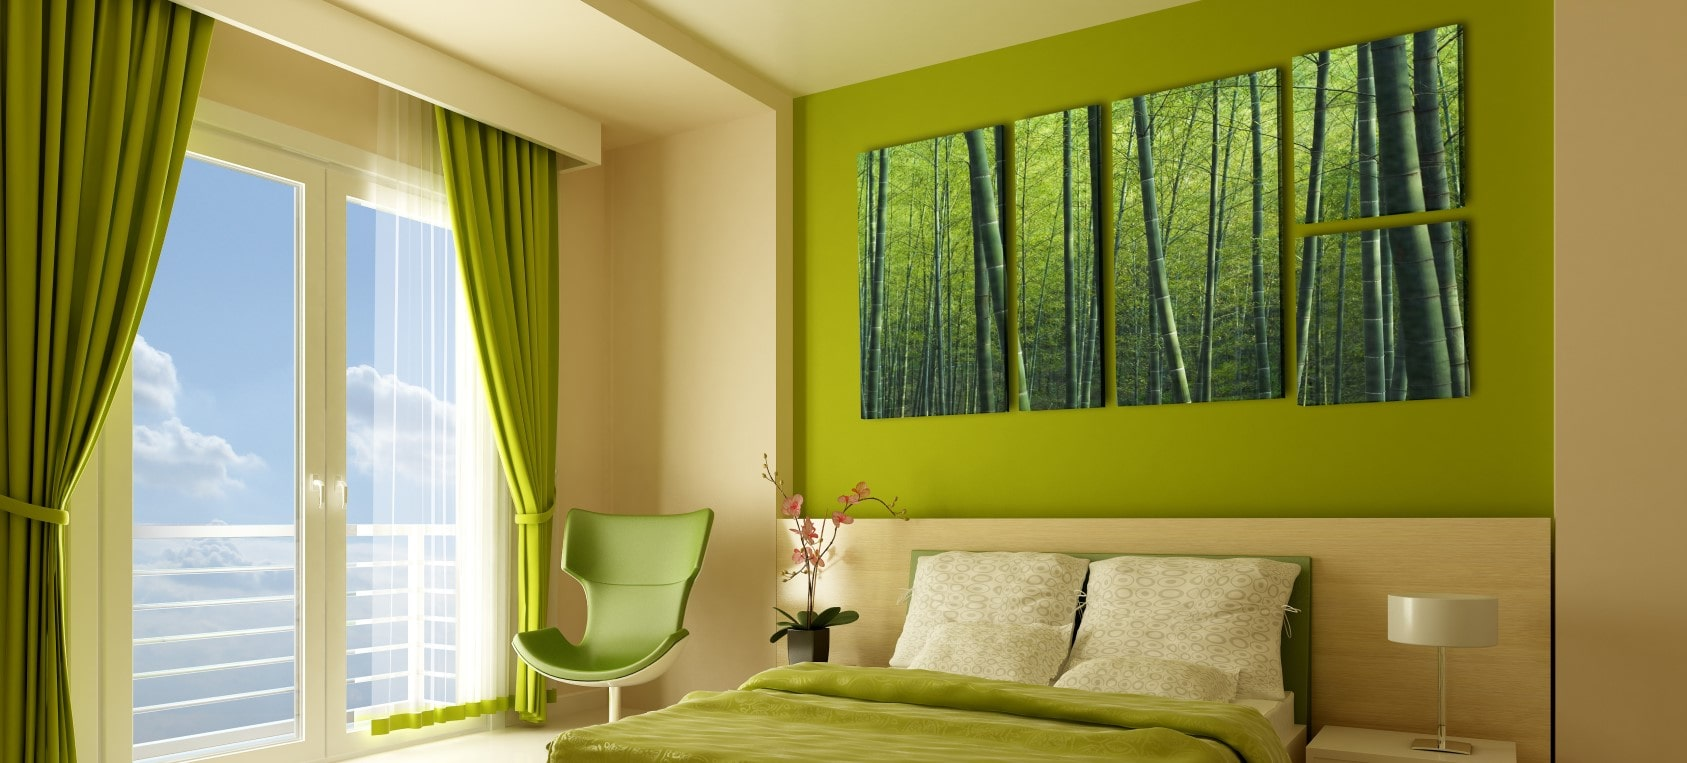 Acoustic Solutions for Home